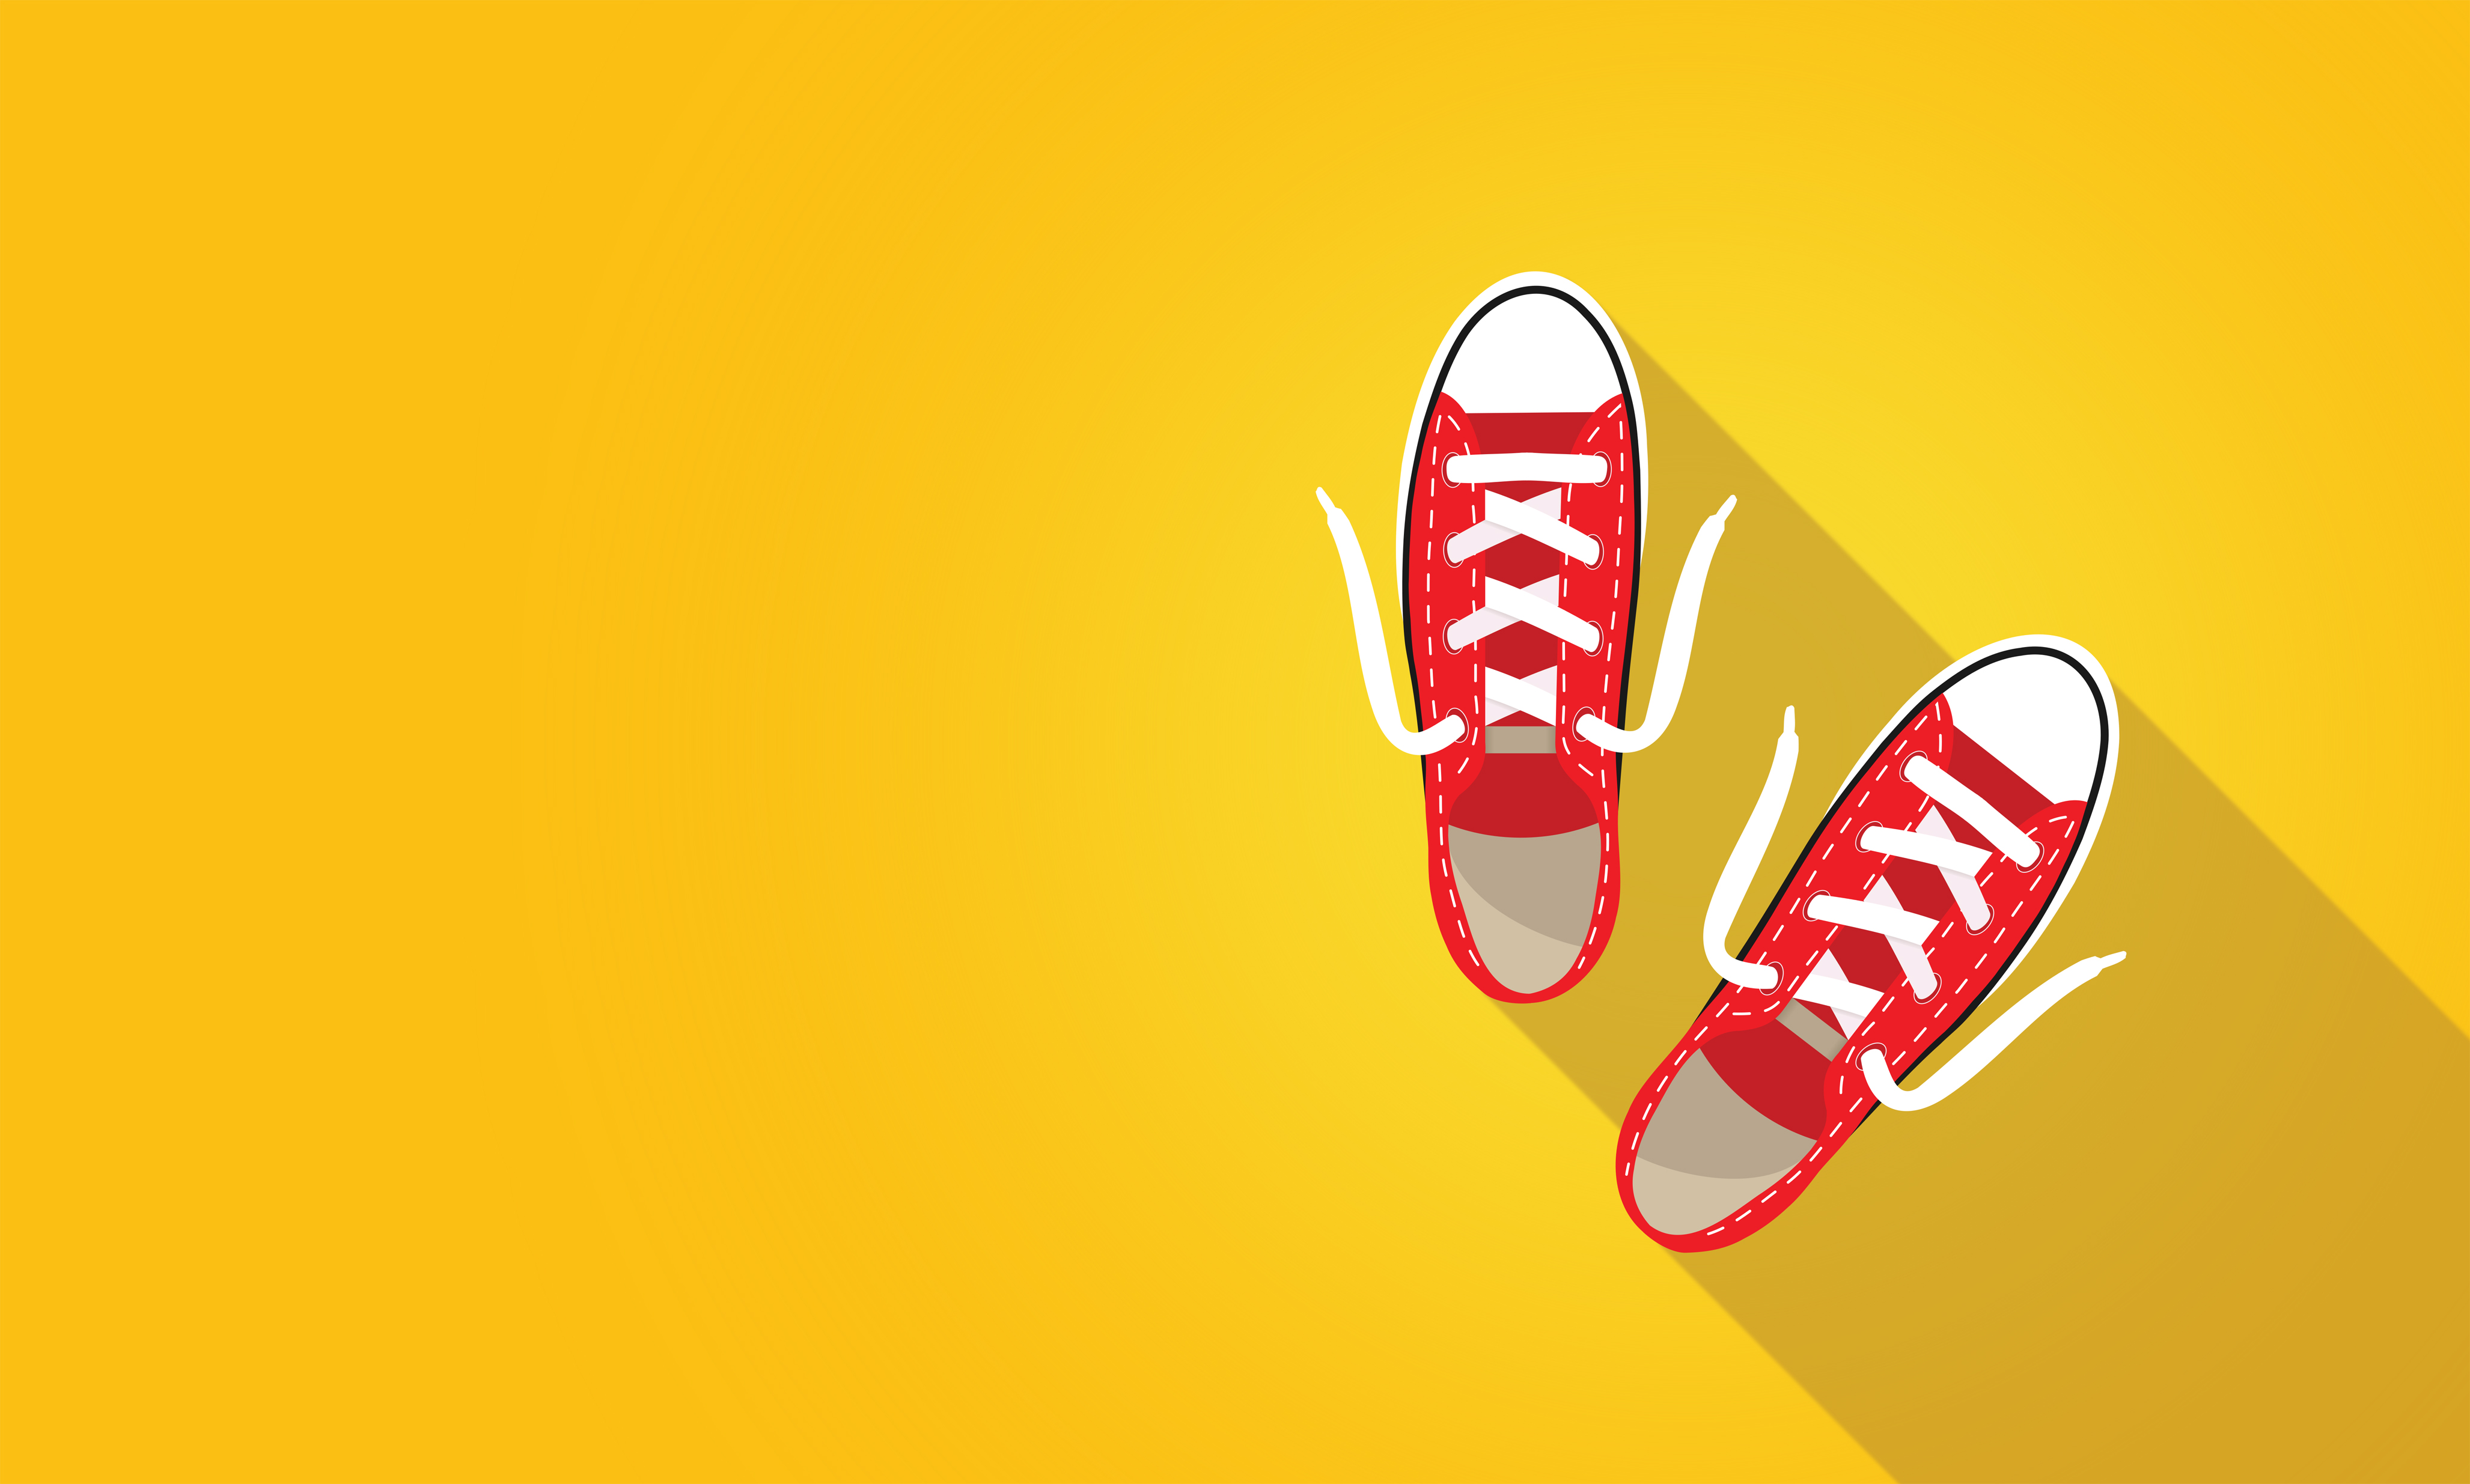 Red sneakers on bright yellow background photo